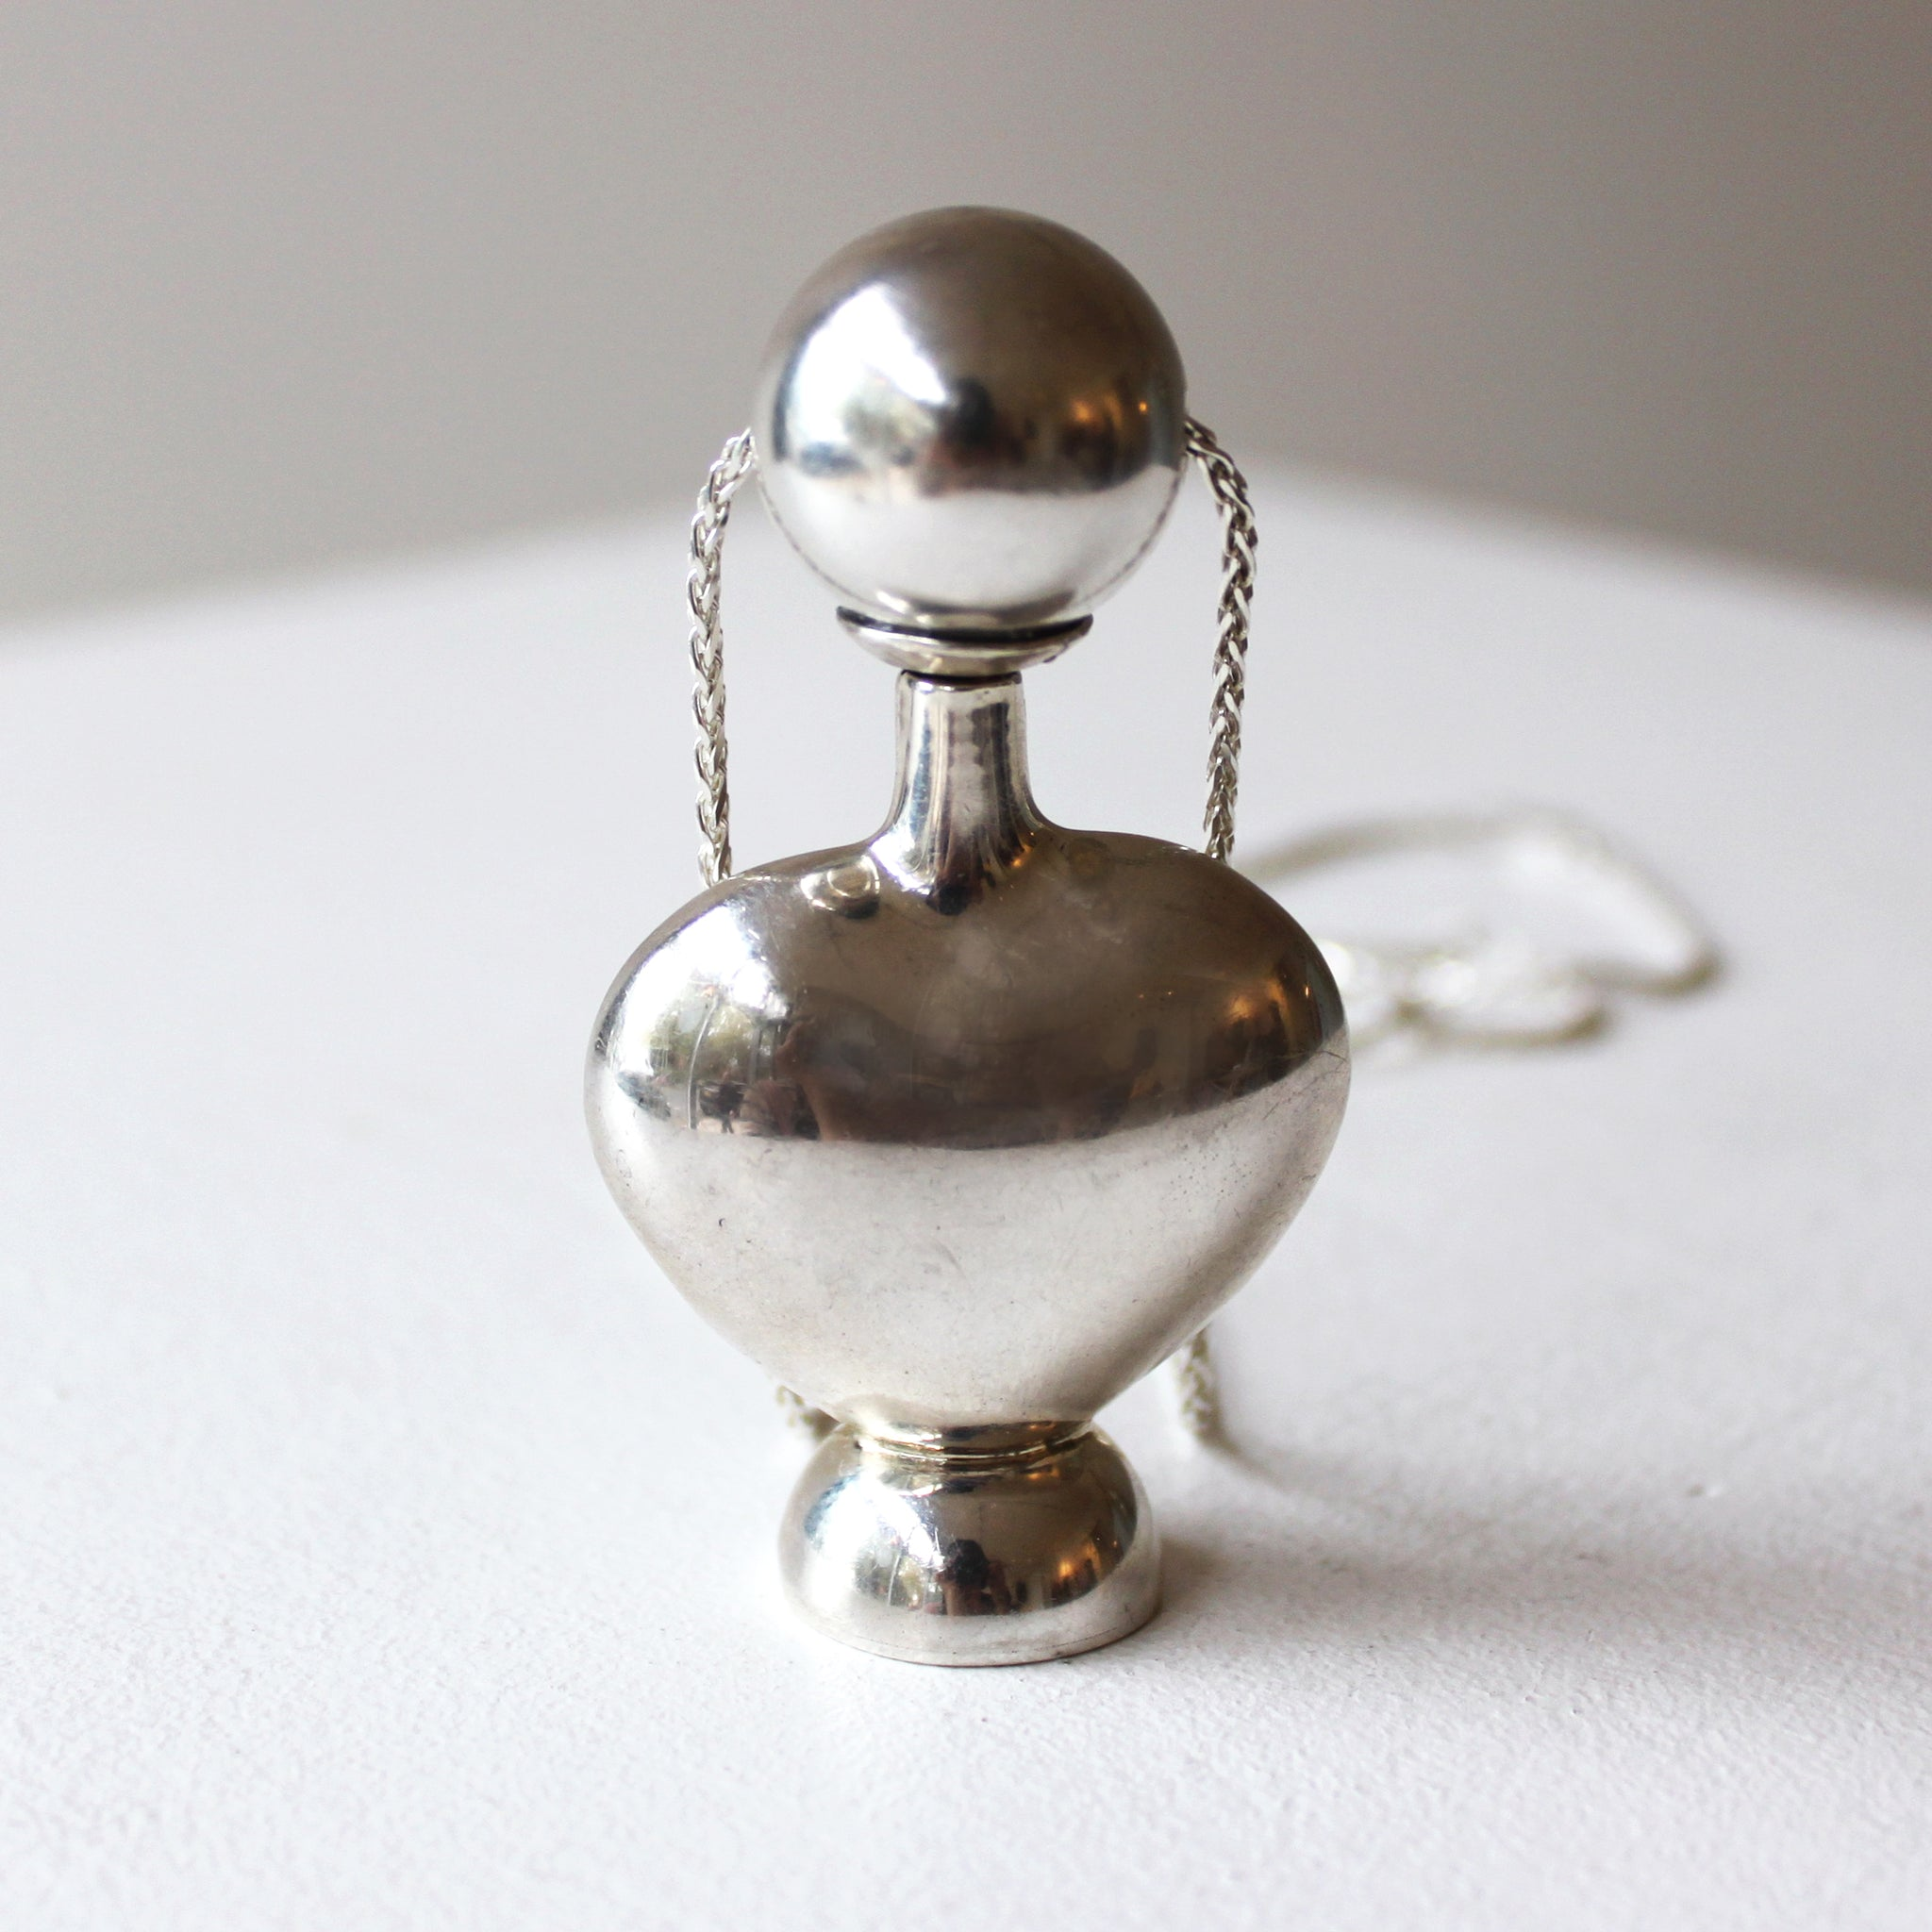 ORNAMENT & CRIME 'RAPHAEL' PERFUME CONTAINER NECKLACE